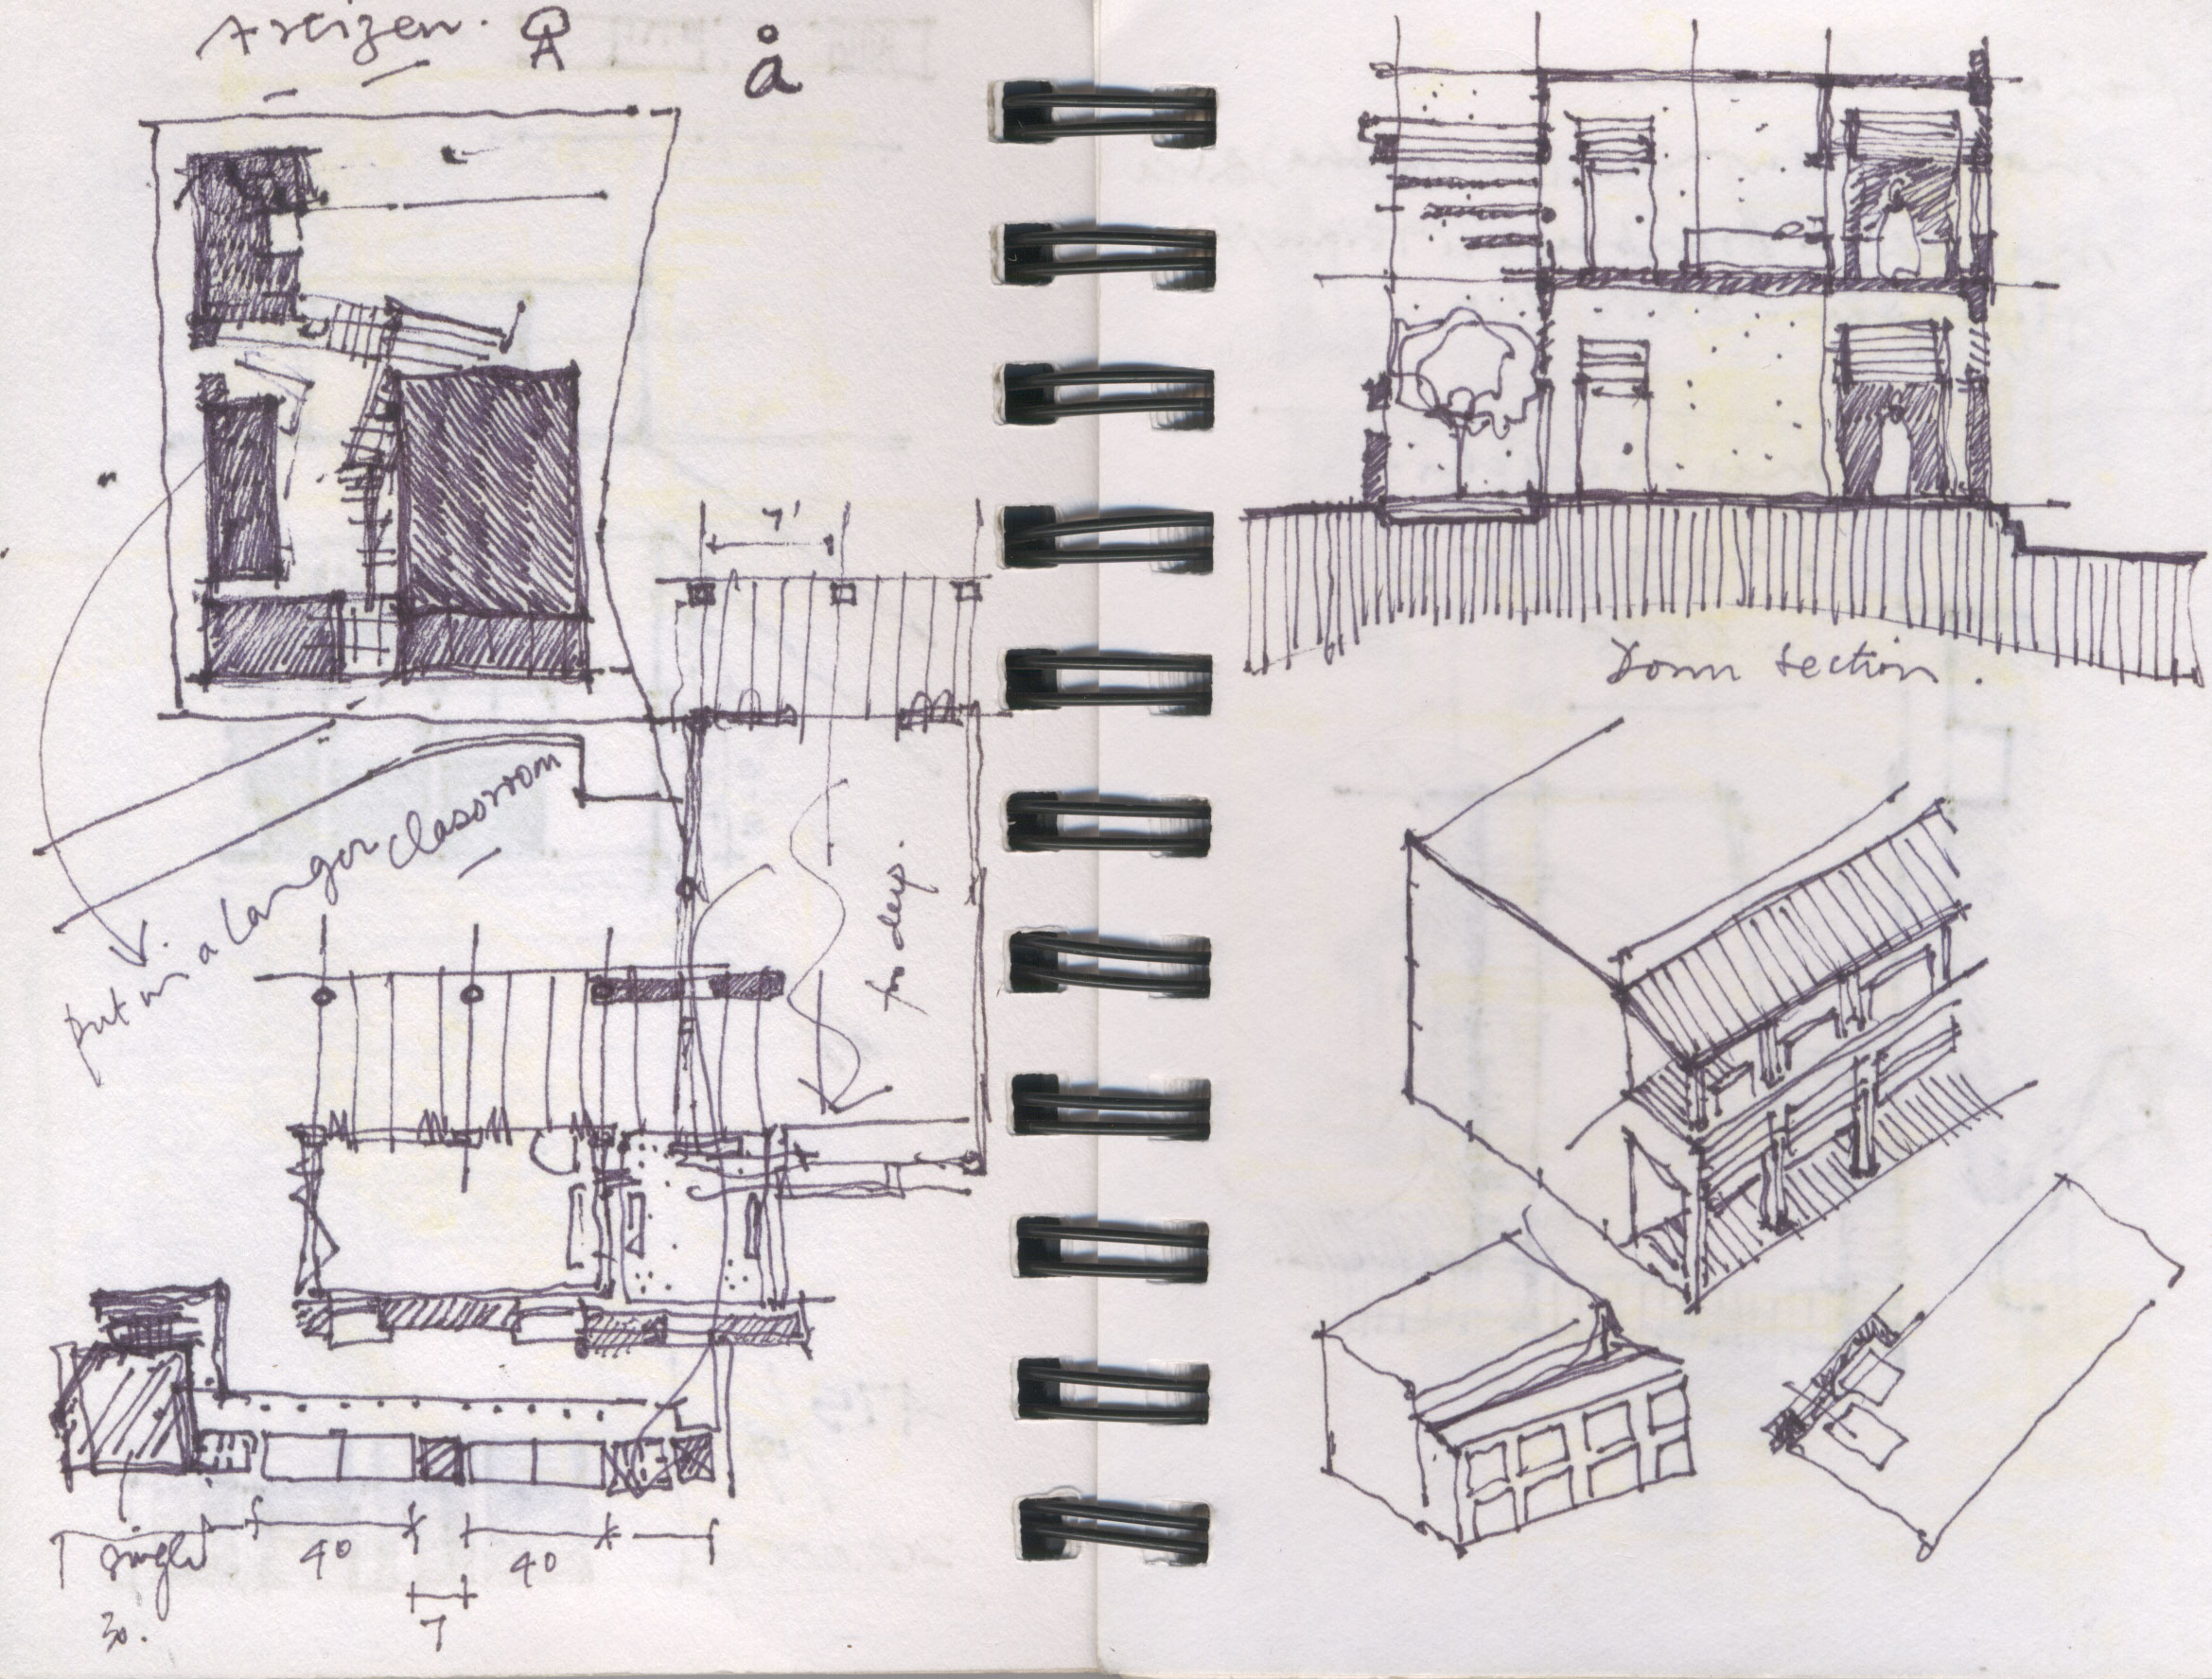 Drawings matter for Notion architecture